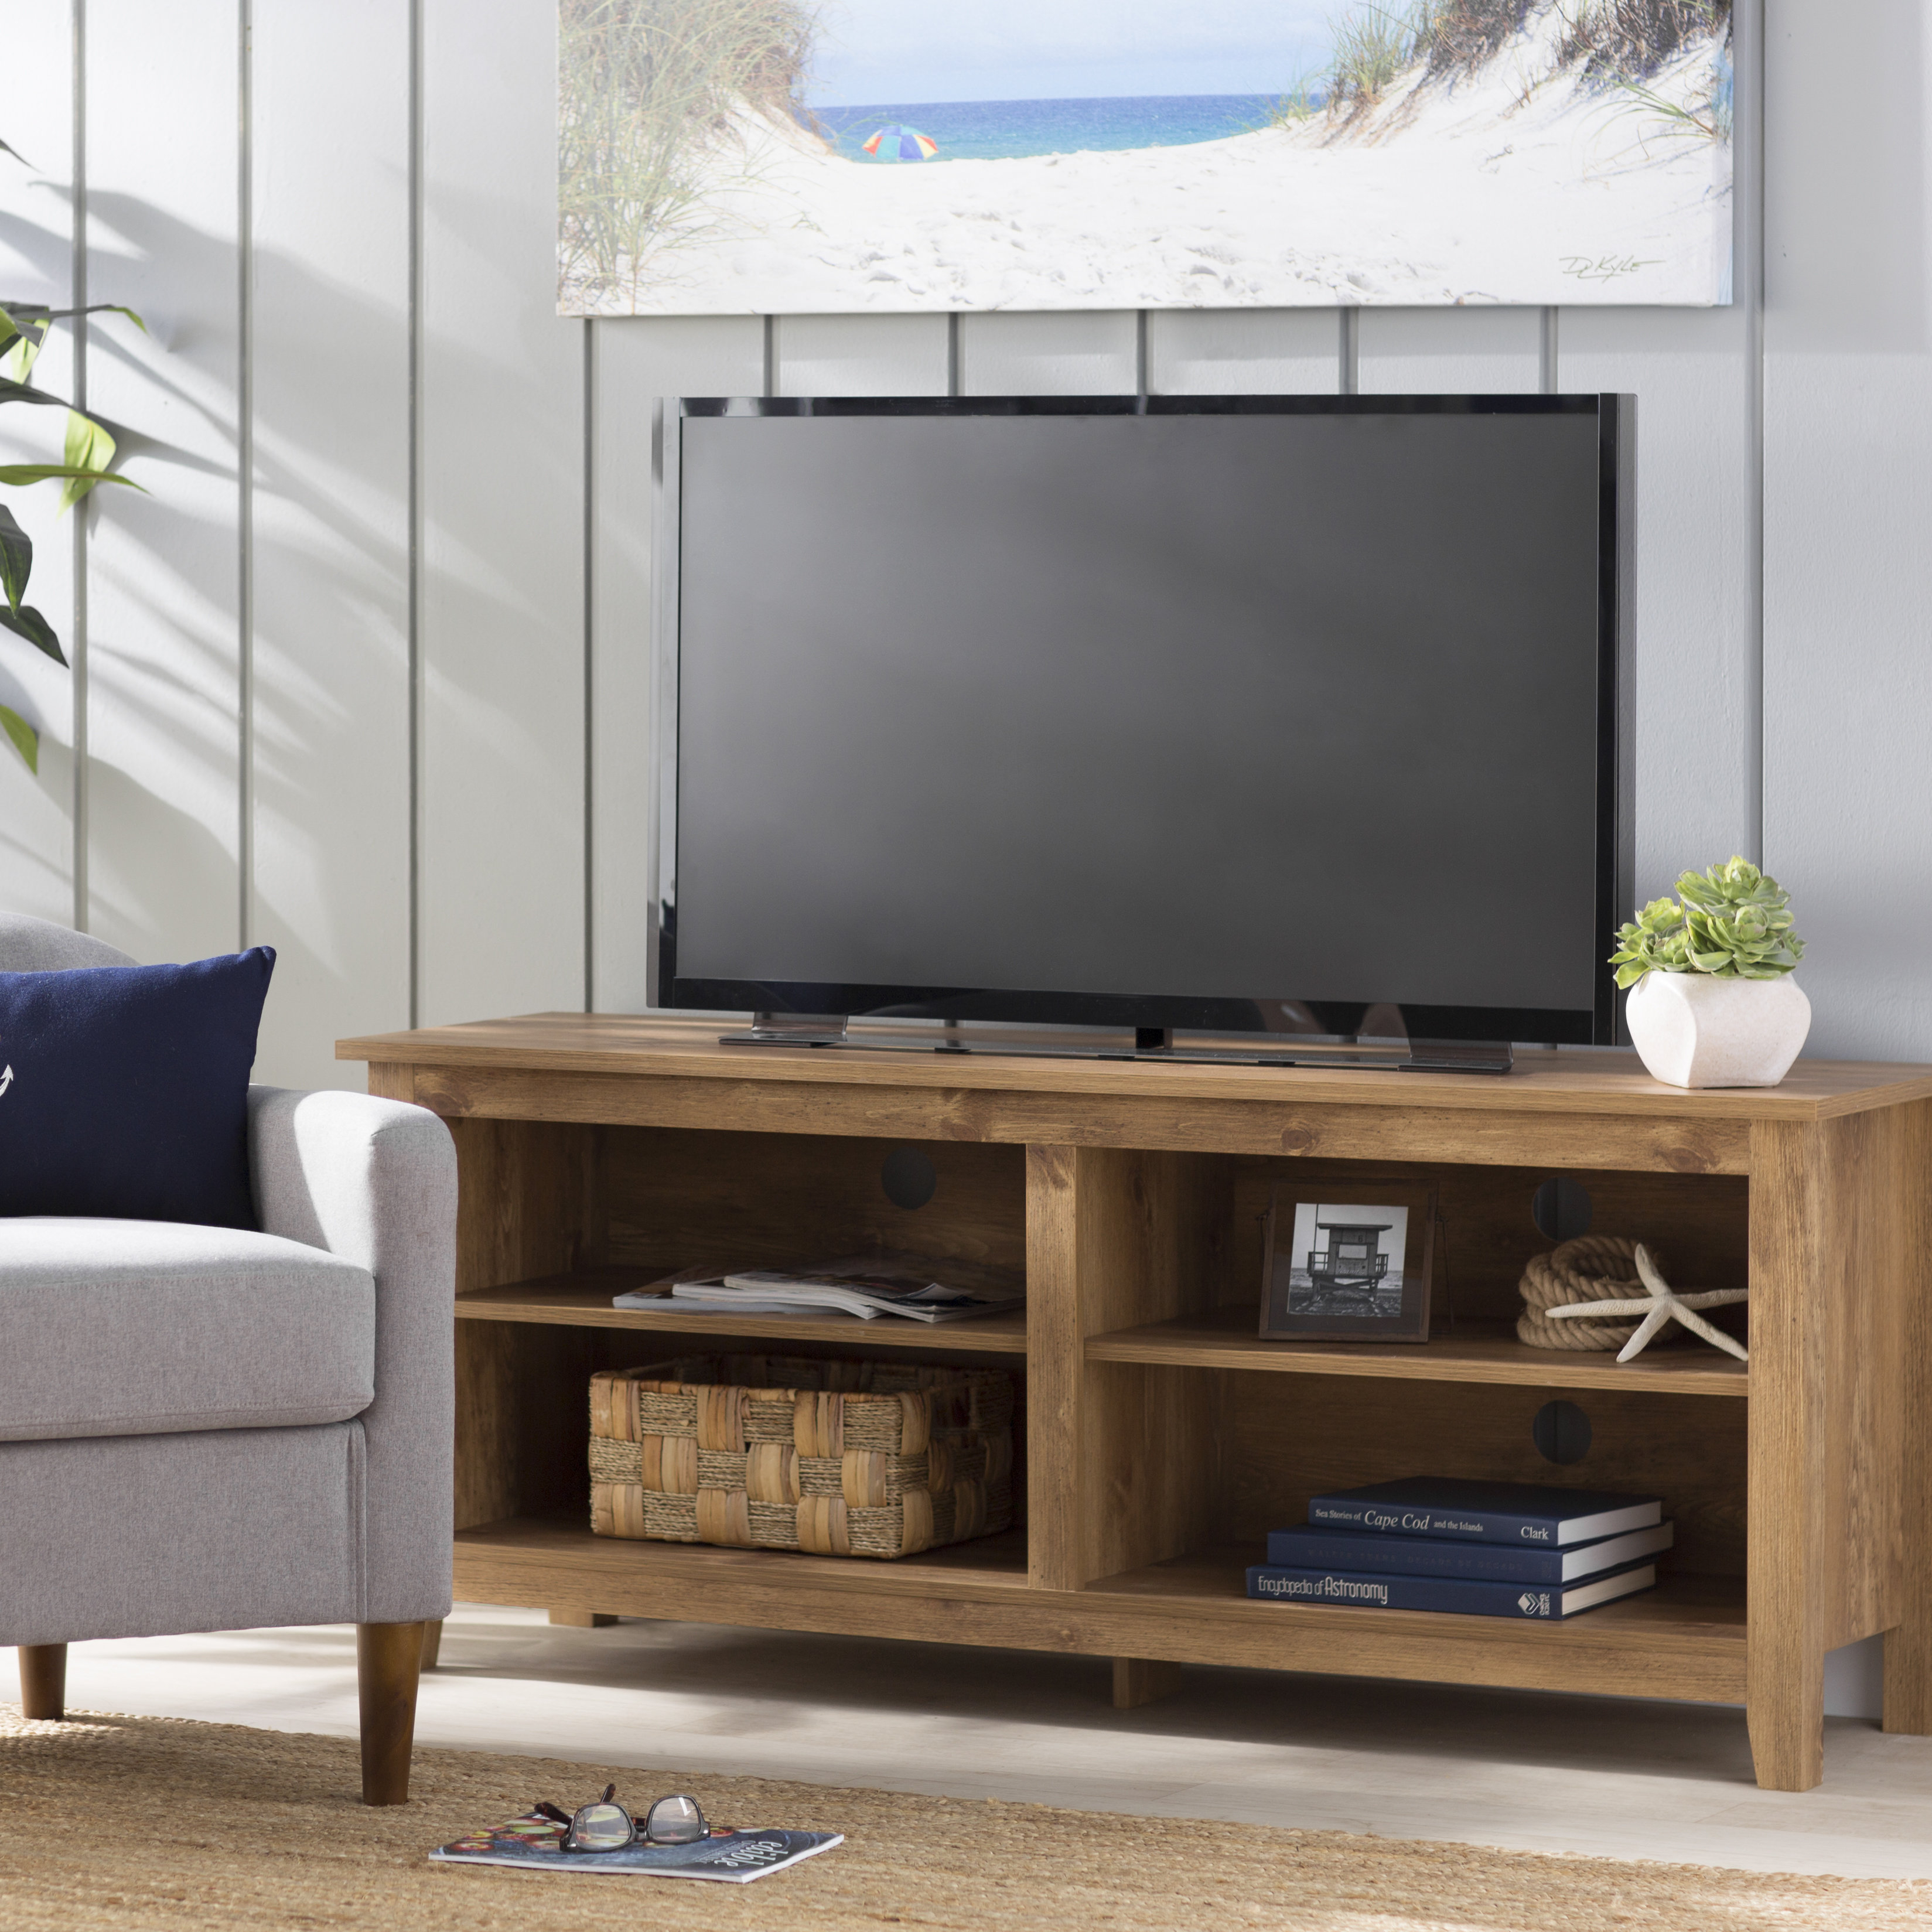 Tv Stands & Entertainment Centers You'll Love | Wayfair Intended For Ducar 74 Inch Tv Stands (View 19 of 30)